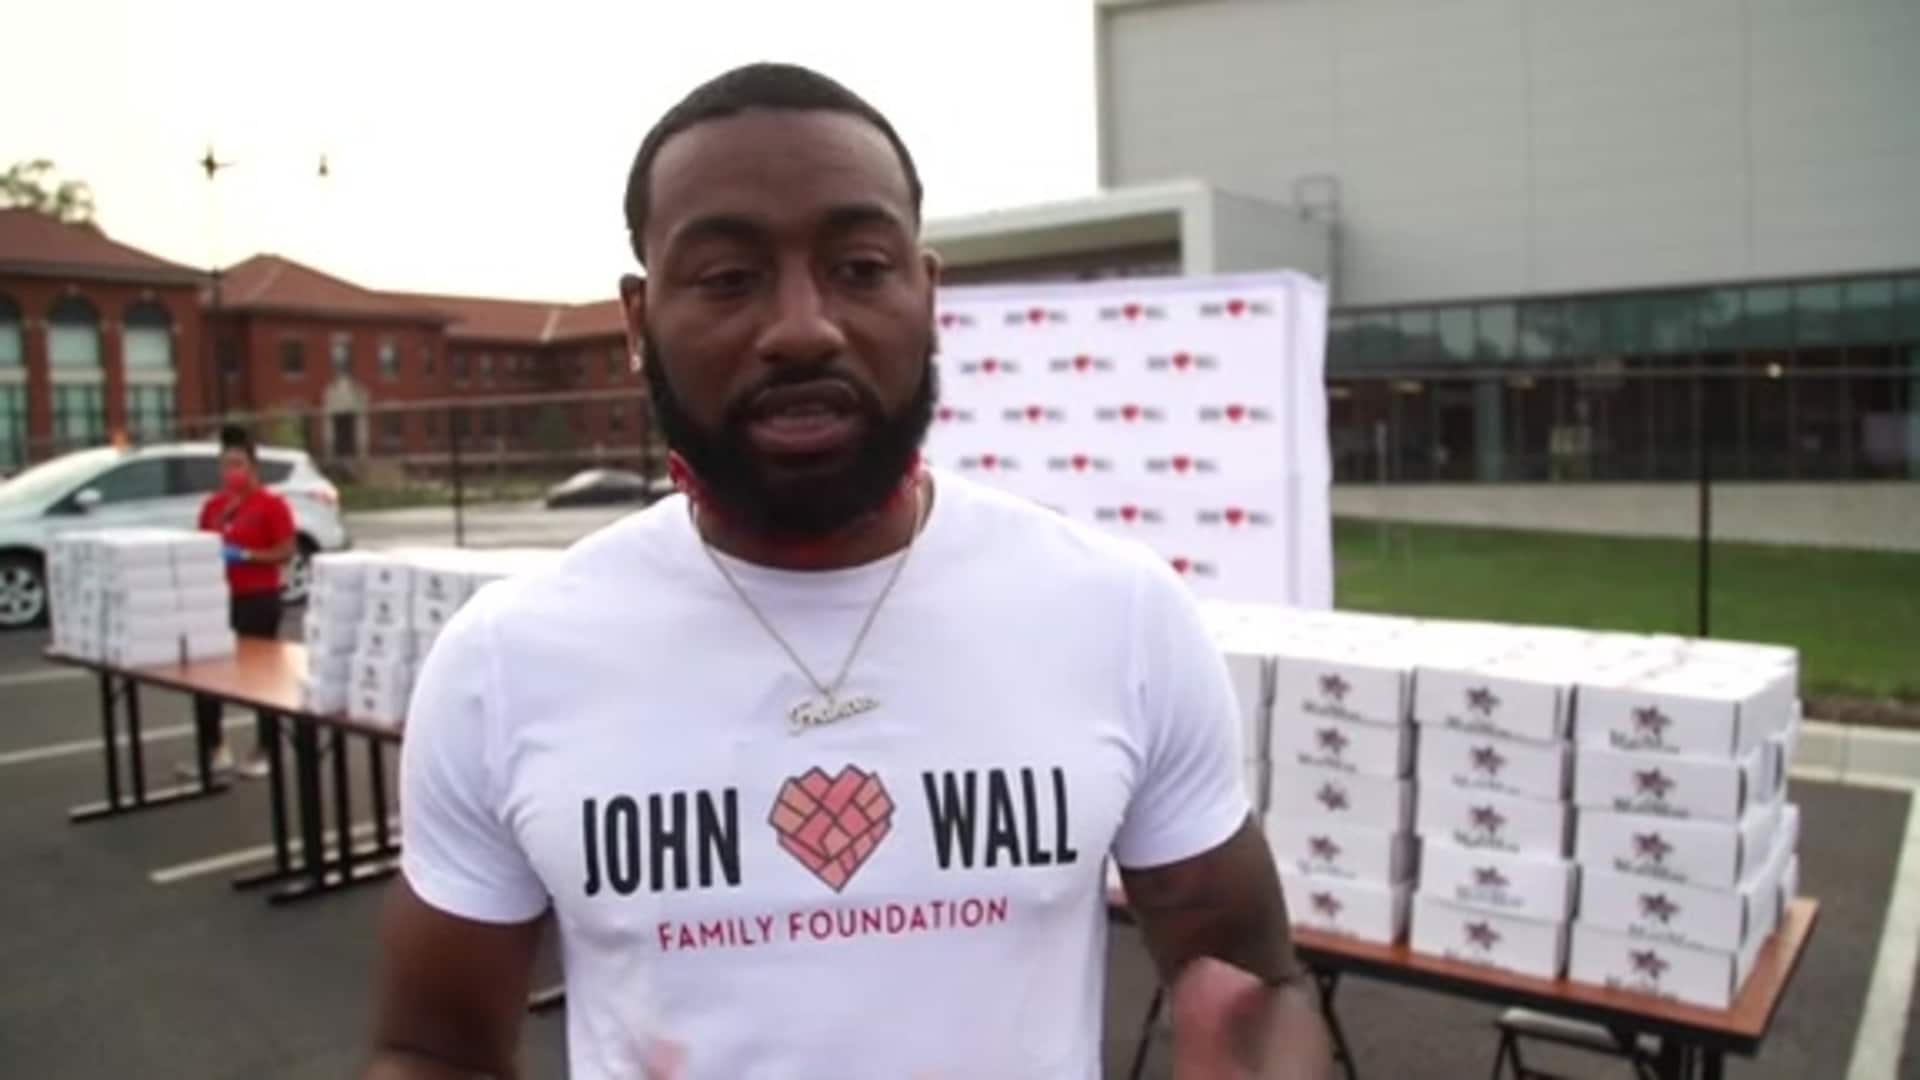 John Wall Family Foundation 7th Annual Back-to-School Giveaway - 9/14/20